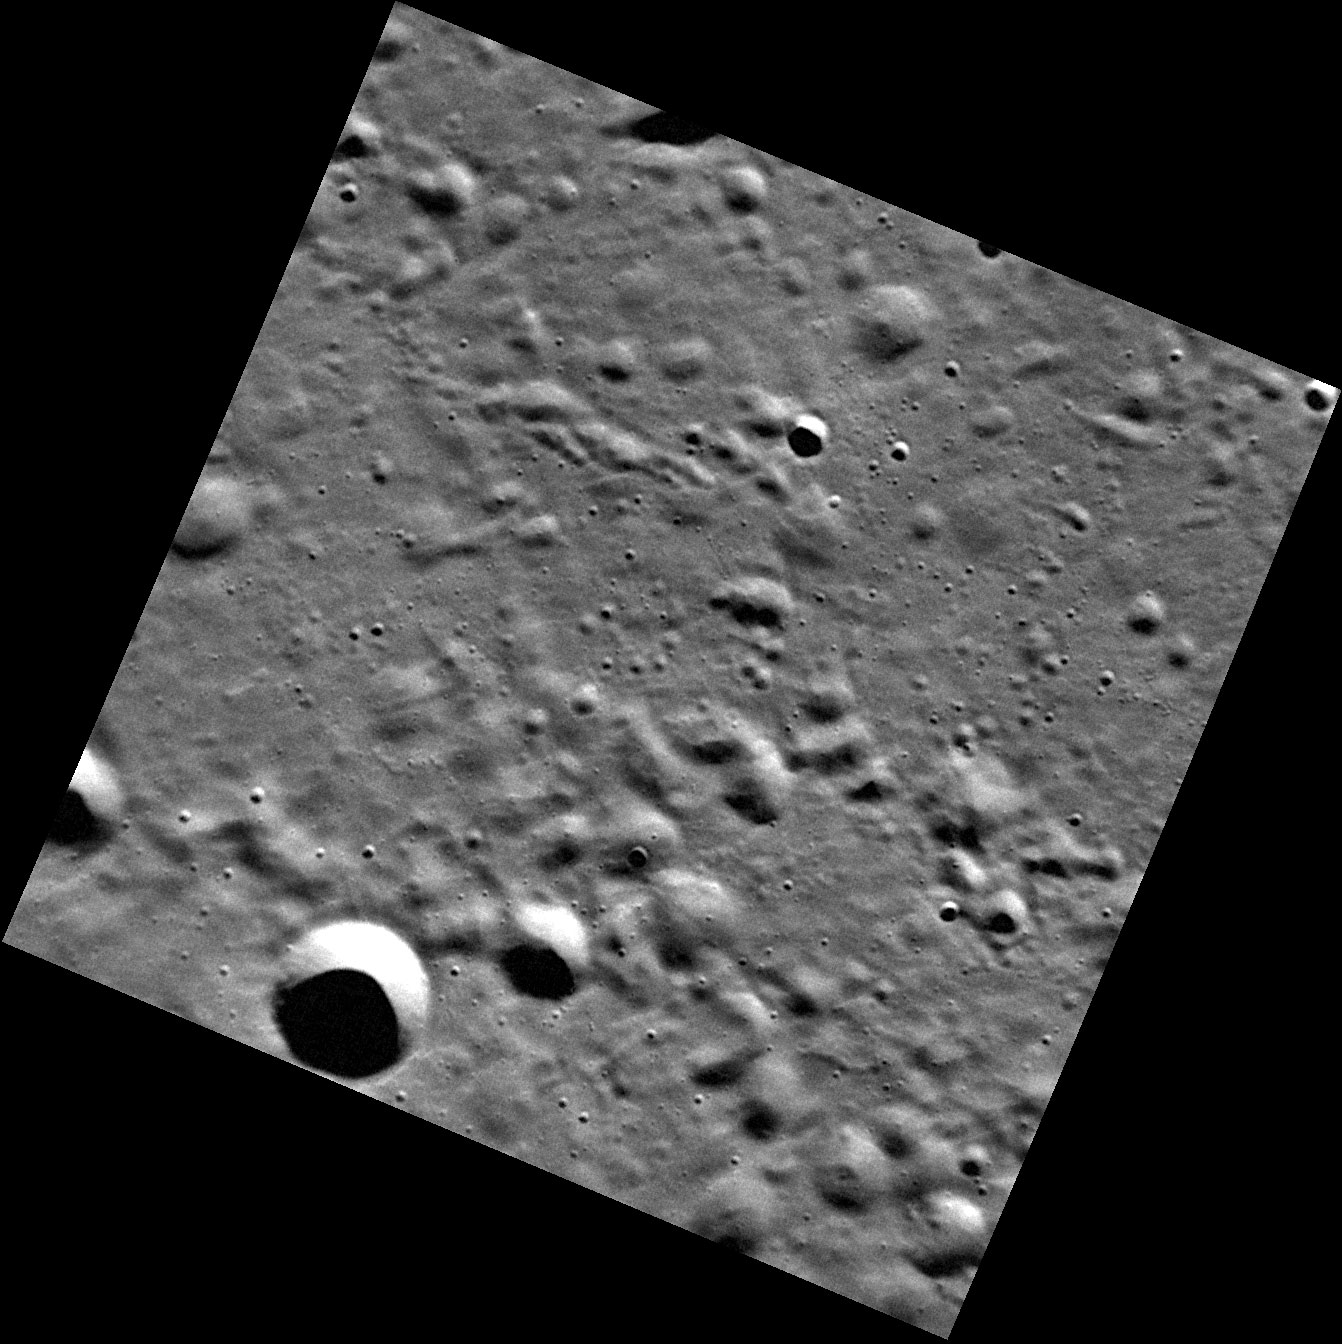 Mercury, as Seen in High Resolution